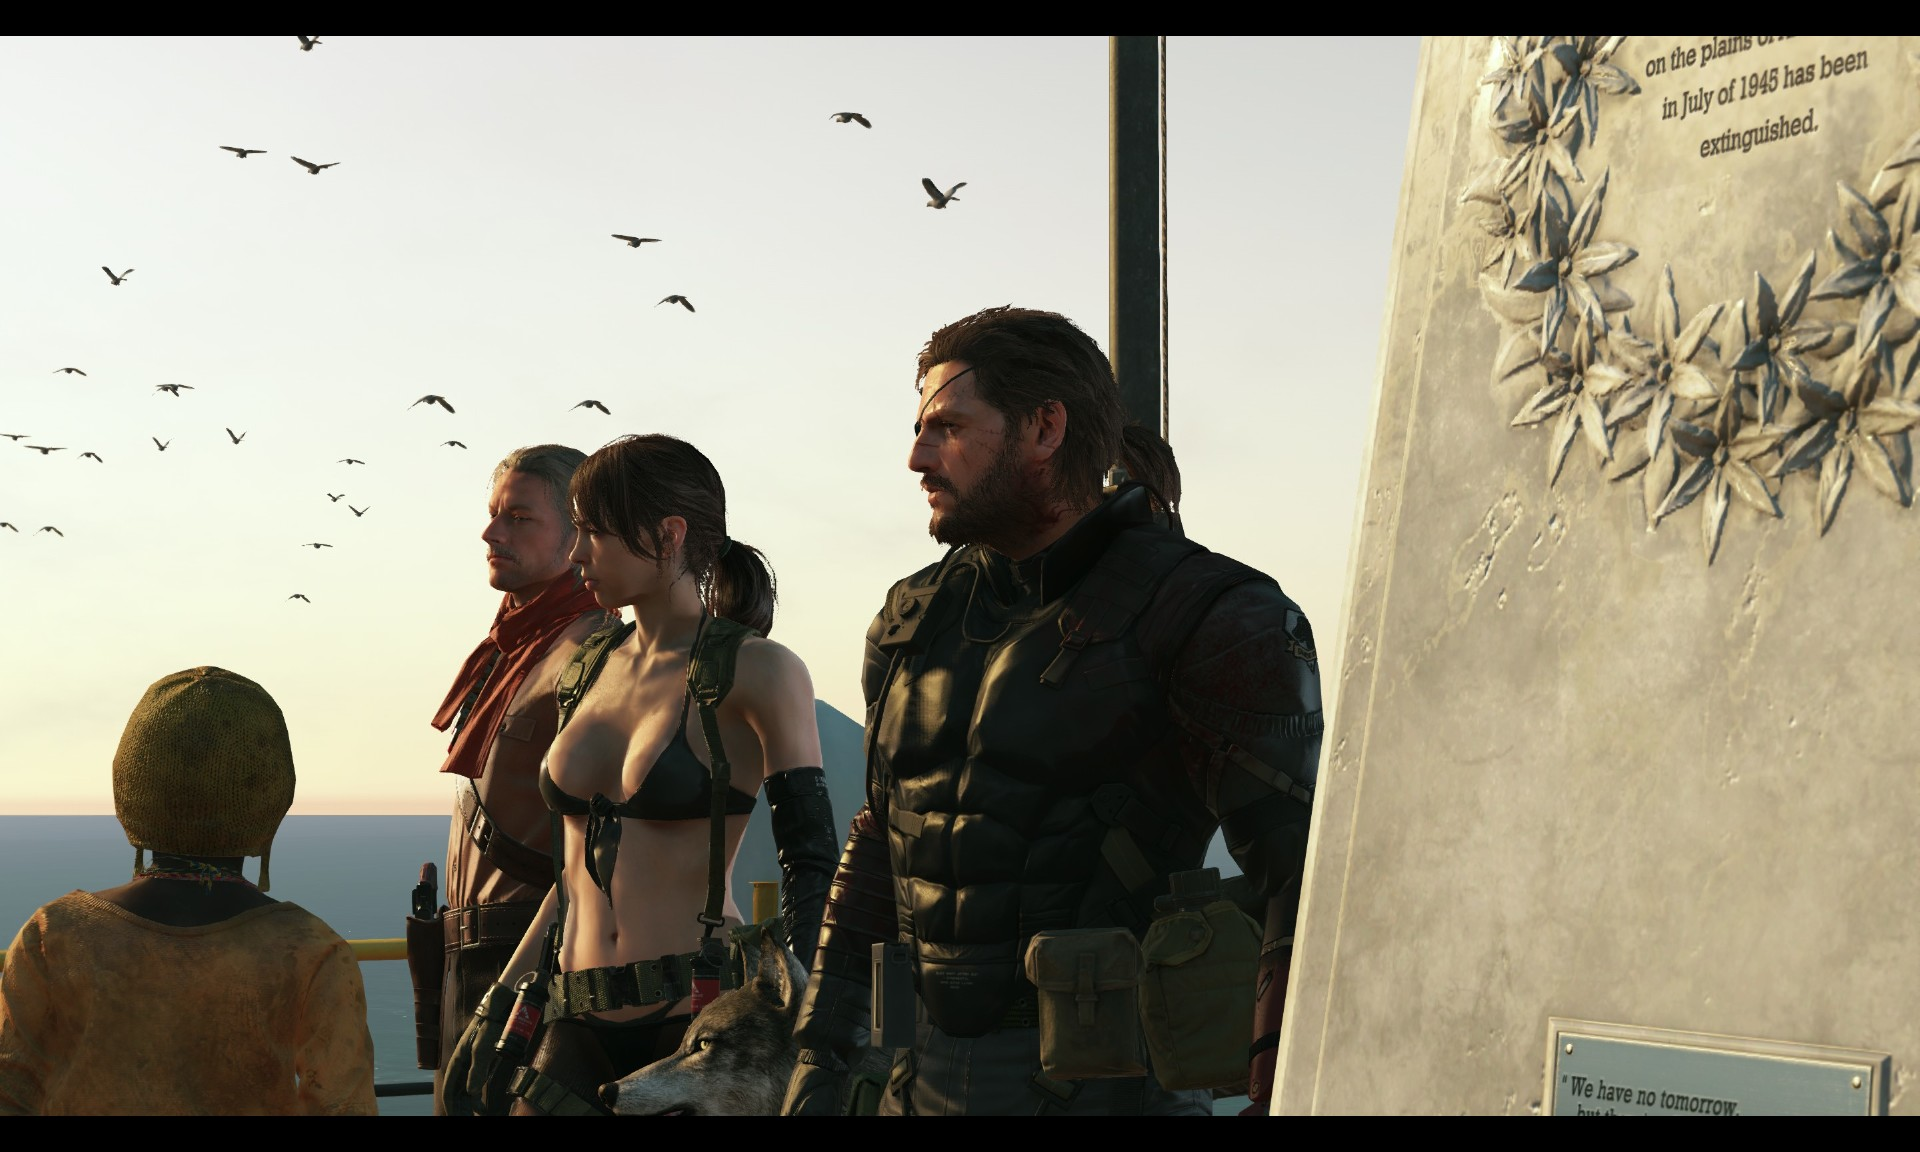 METAL GEAR SOLID V: GROUND ZEROES + THE PHANTOM PAIN - Página 35 ?interpolation=lanczos-none&output-format=jpeg&output-quality=95&fit=inside%7C2048%3A1152&composite-to=*,*%7C2048%3A1152&background-color=black